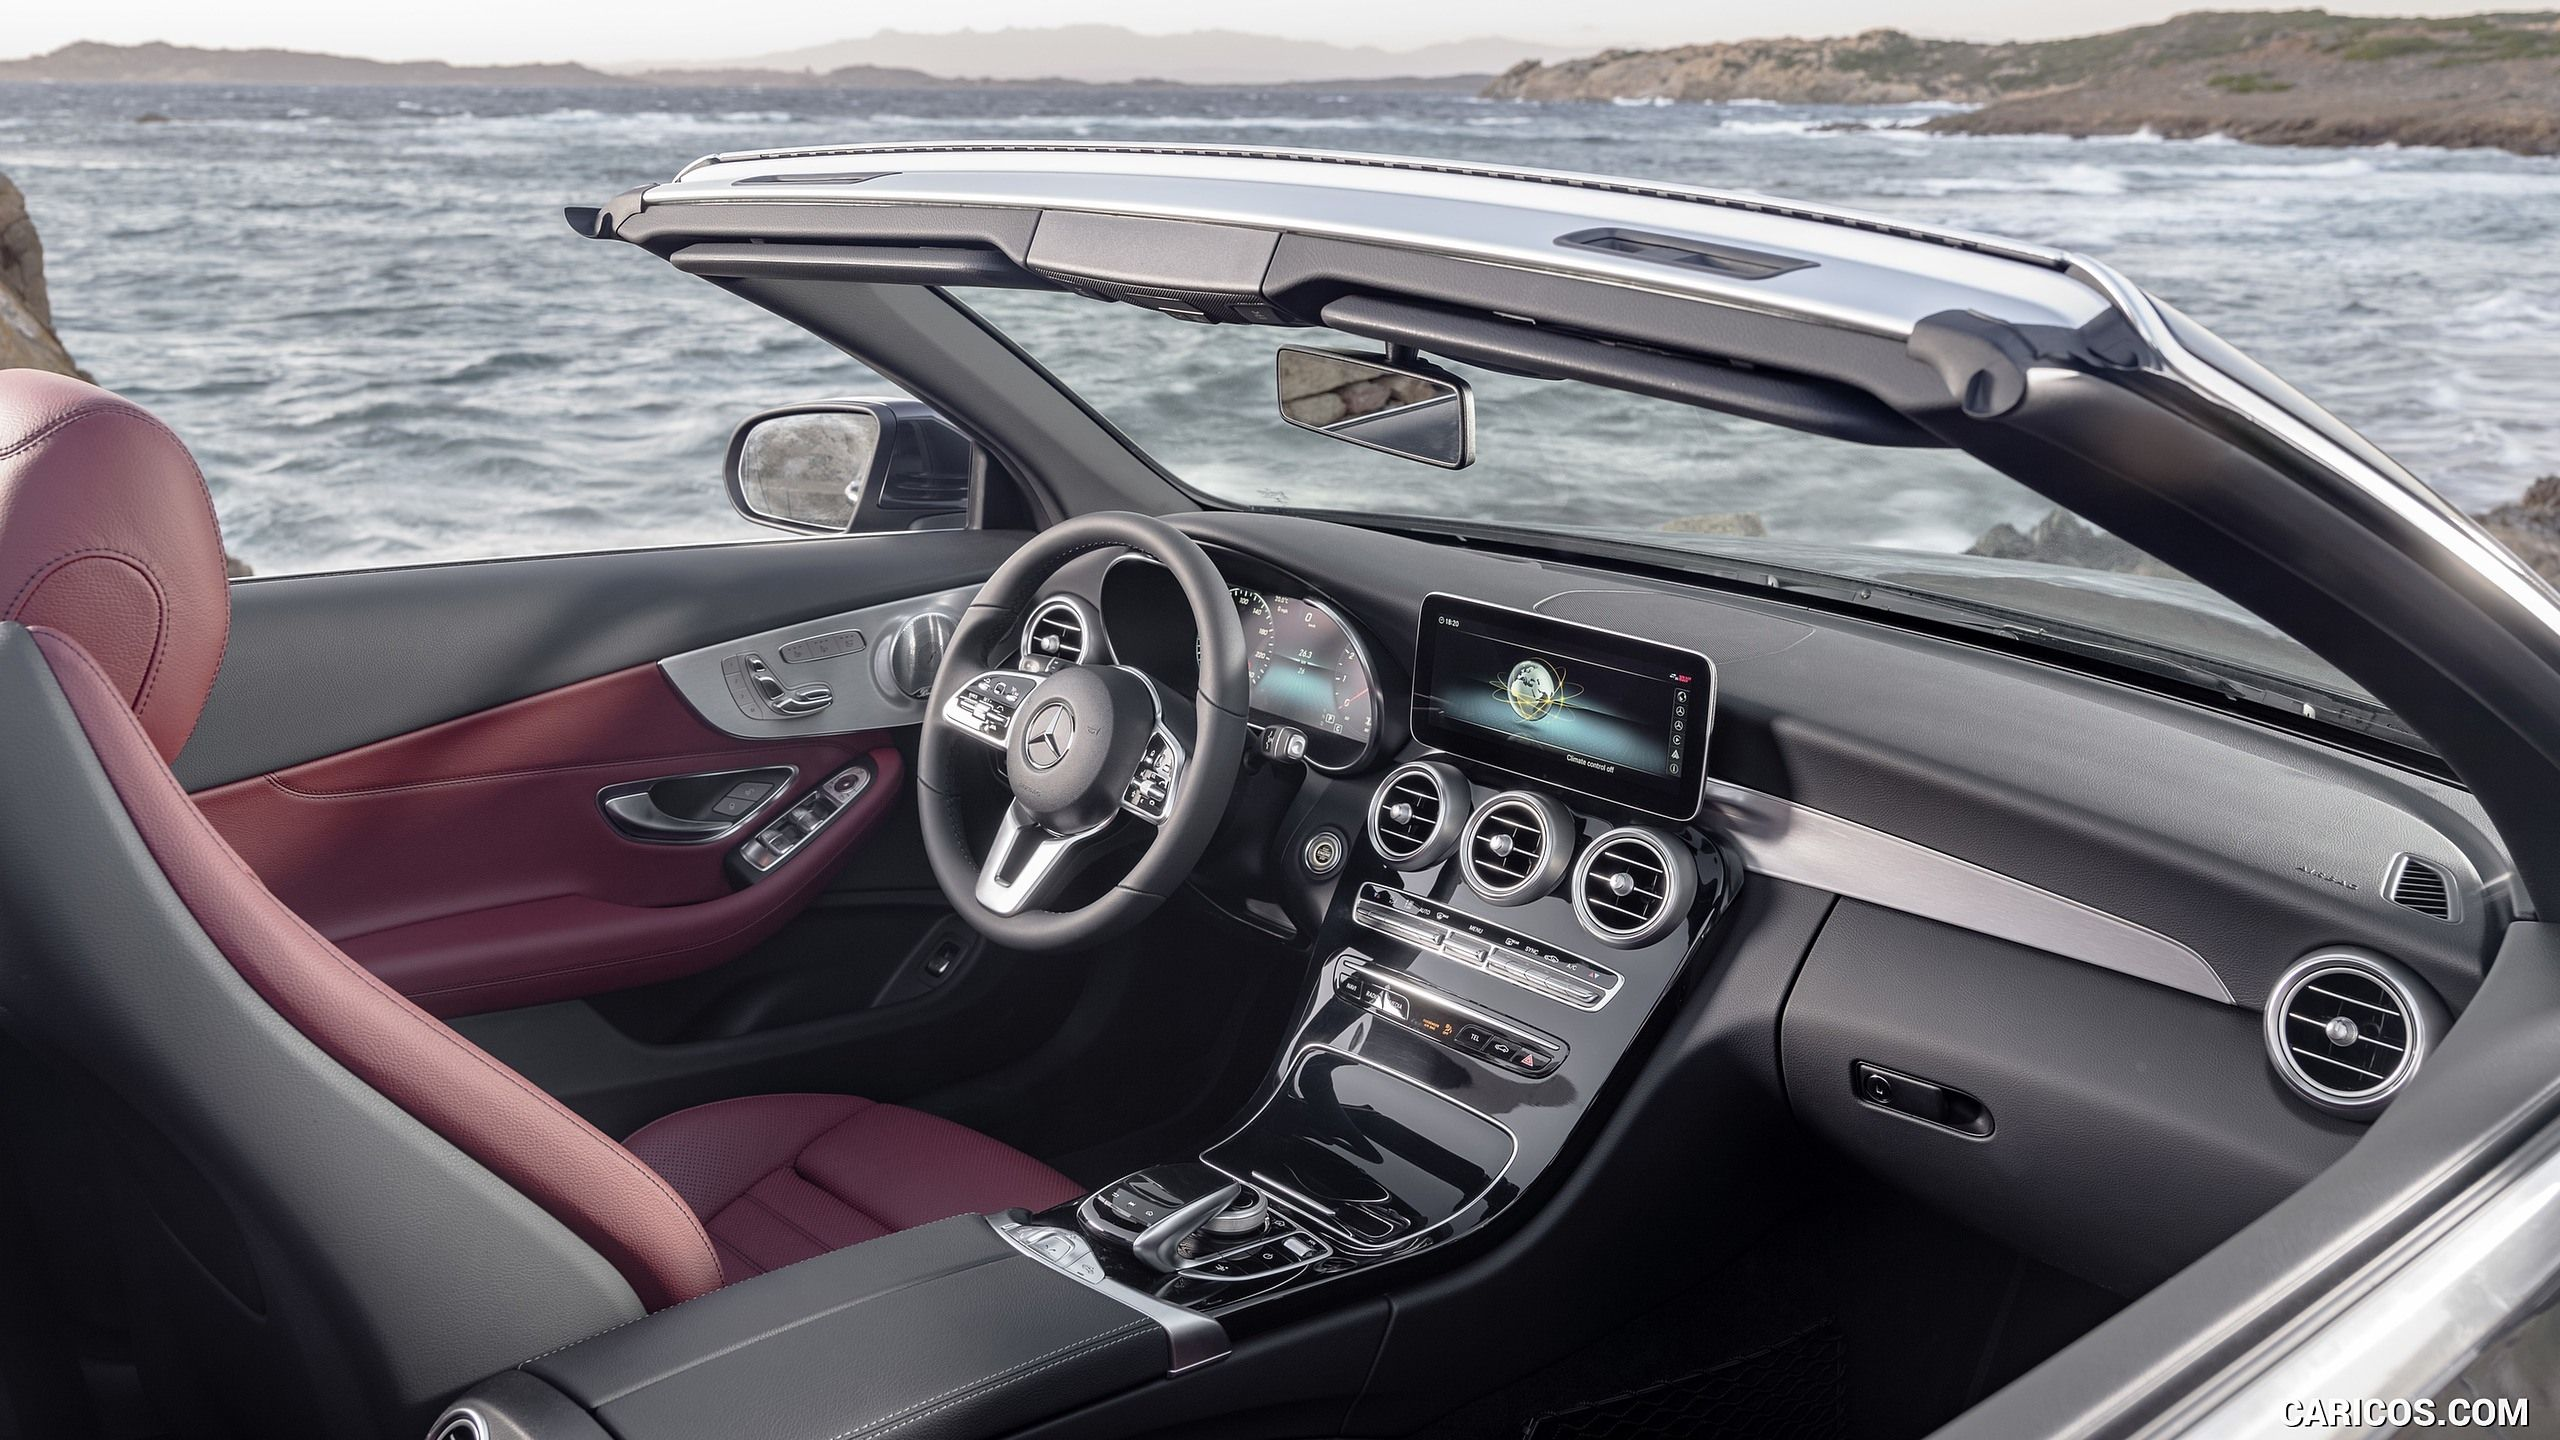 The Interior Of The New Mercedes Benz C Class Coupe Combines